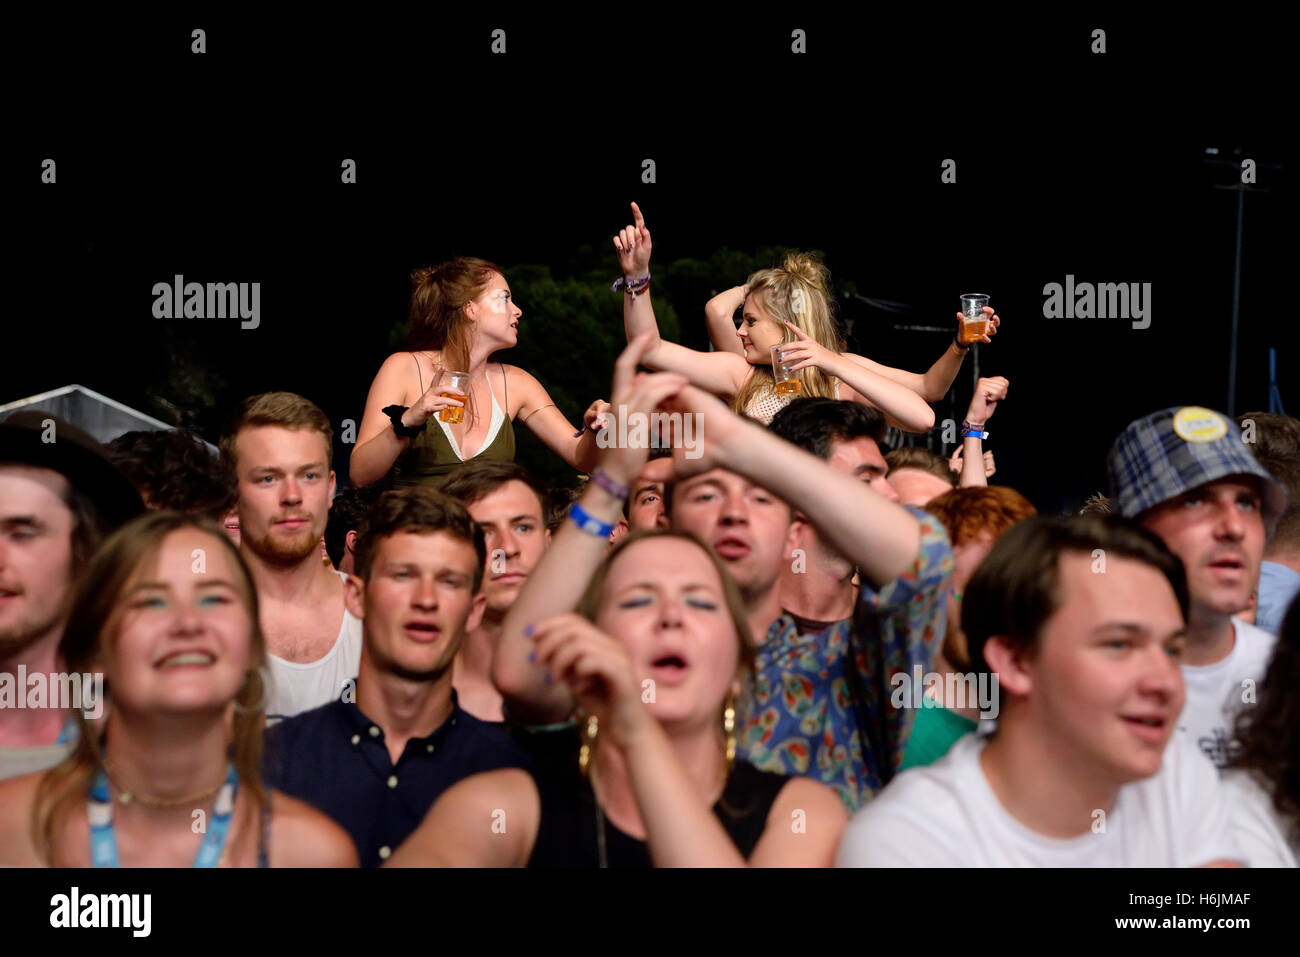 BENICASSIM, SPAIN - JUL 16: Crowd in a concert at FIB Festival on July 16, 2015 in Benicassim, Spain. - Stock Image